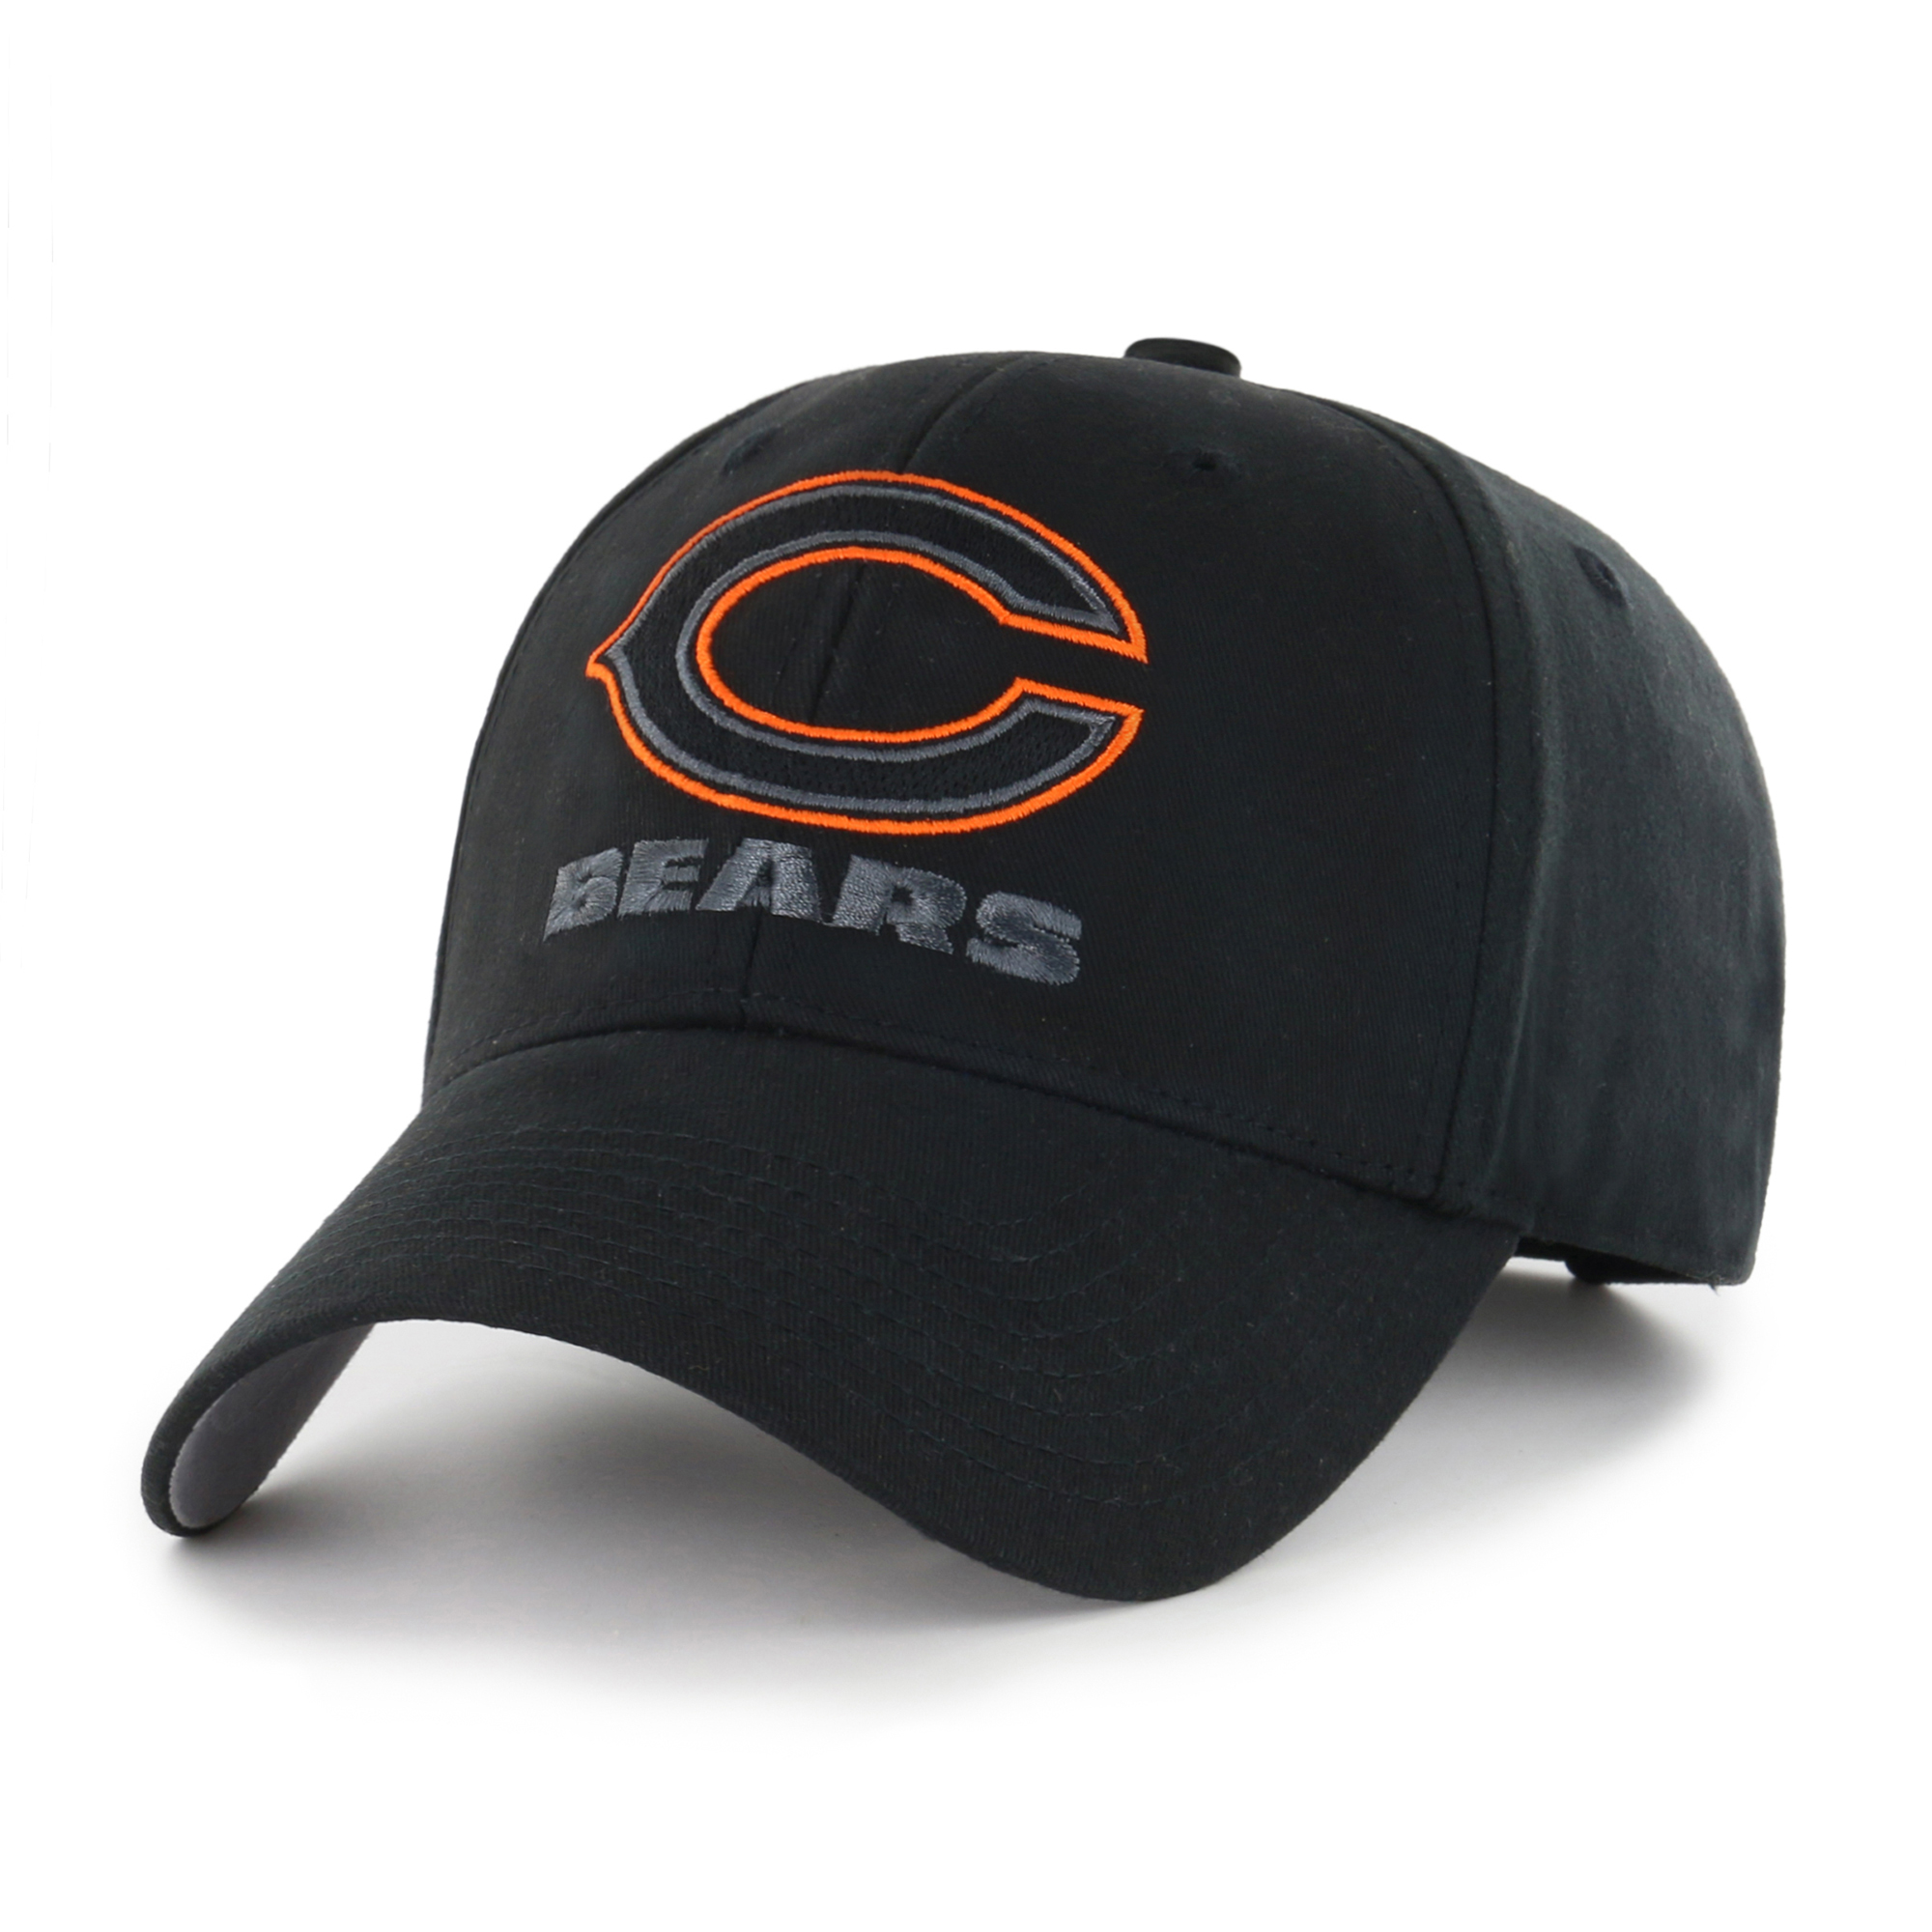 NFL Chicago Bears Black Mass Basic Adjustable Cap/Hat by Fan Favorite